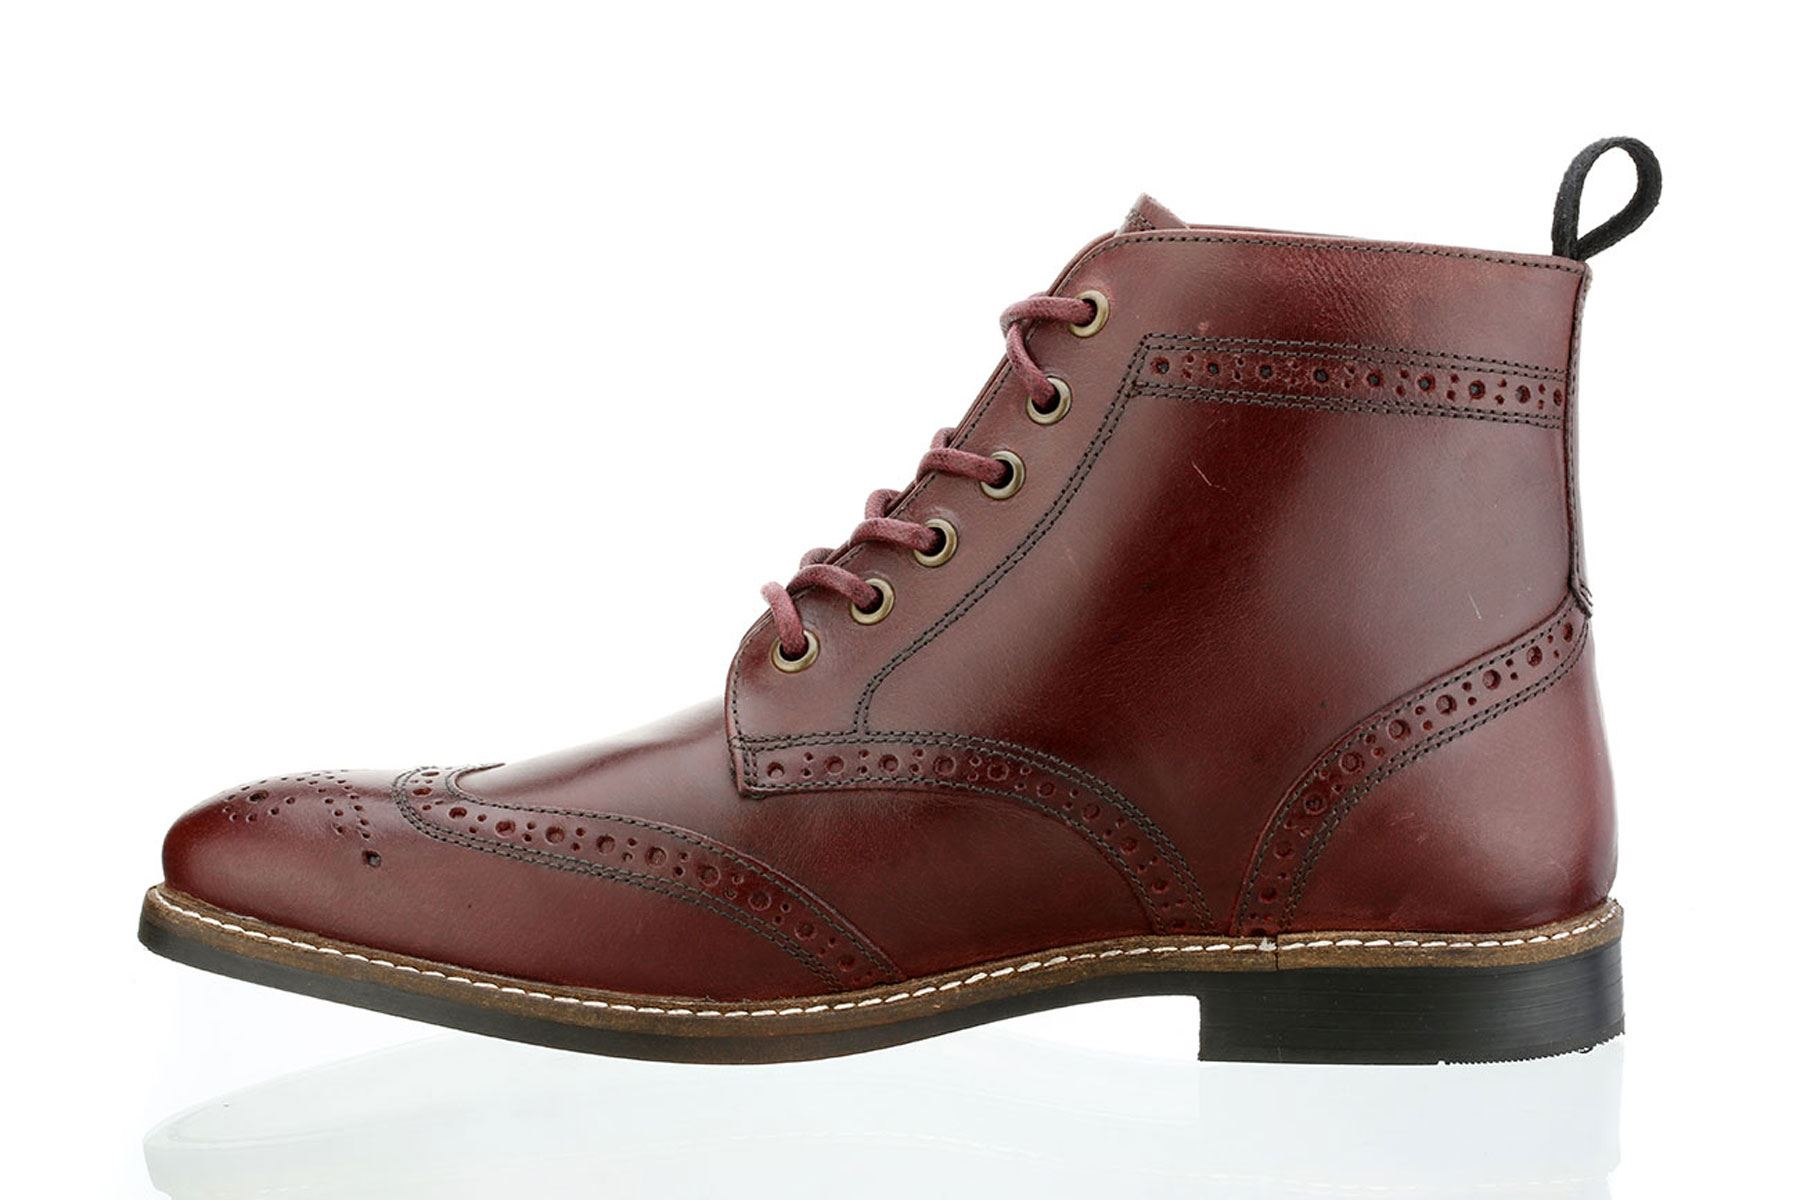 Red Tape Mens Brogue Fashion Round toe Lace Up Leather ...